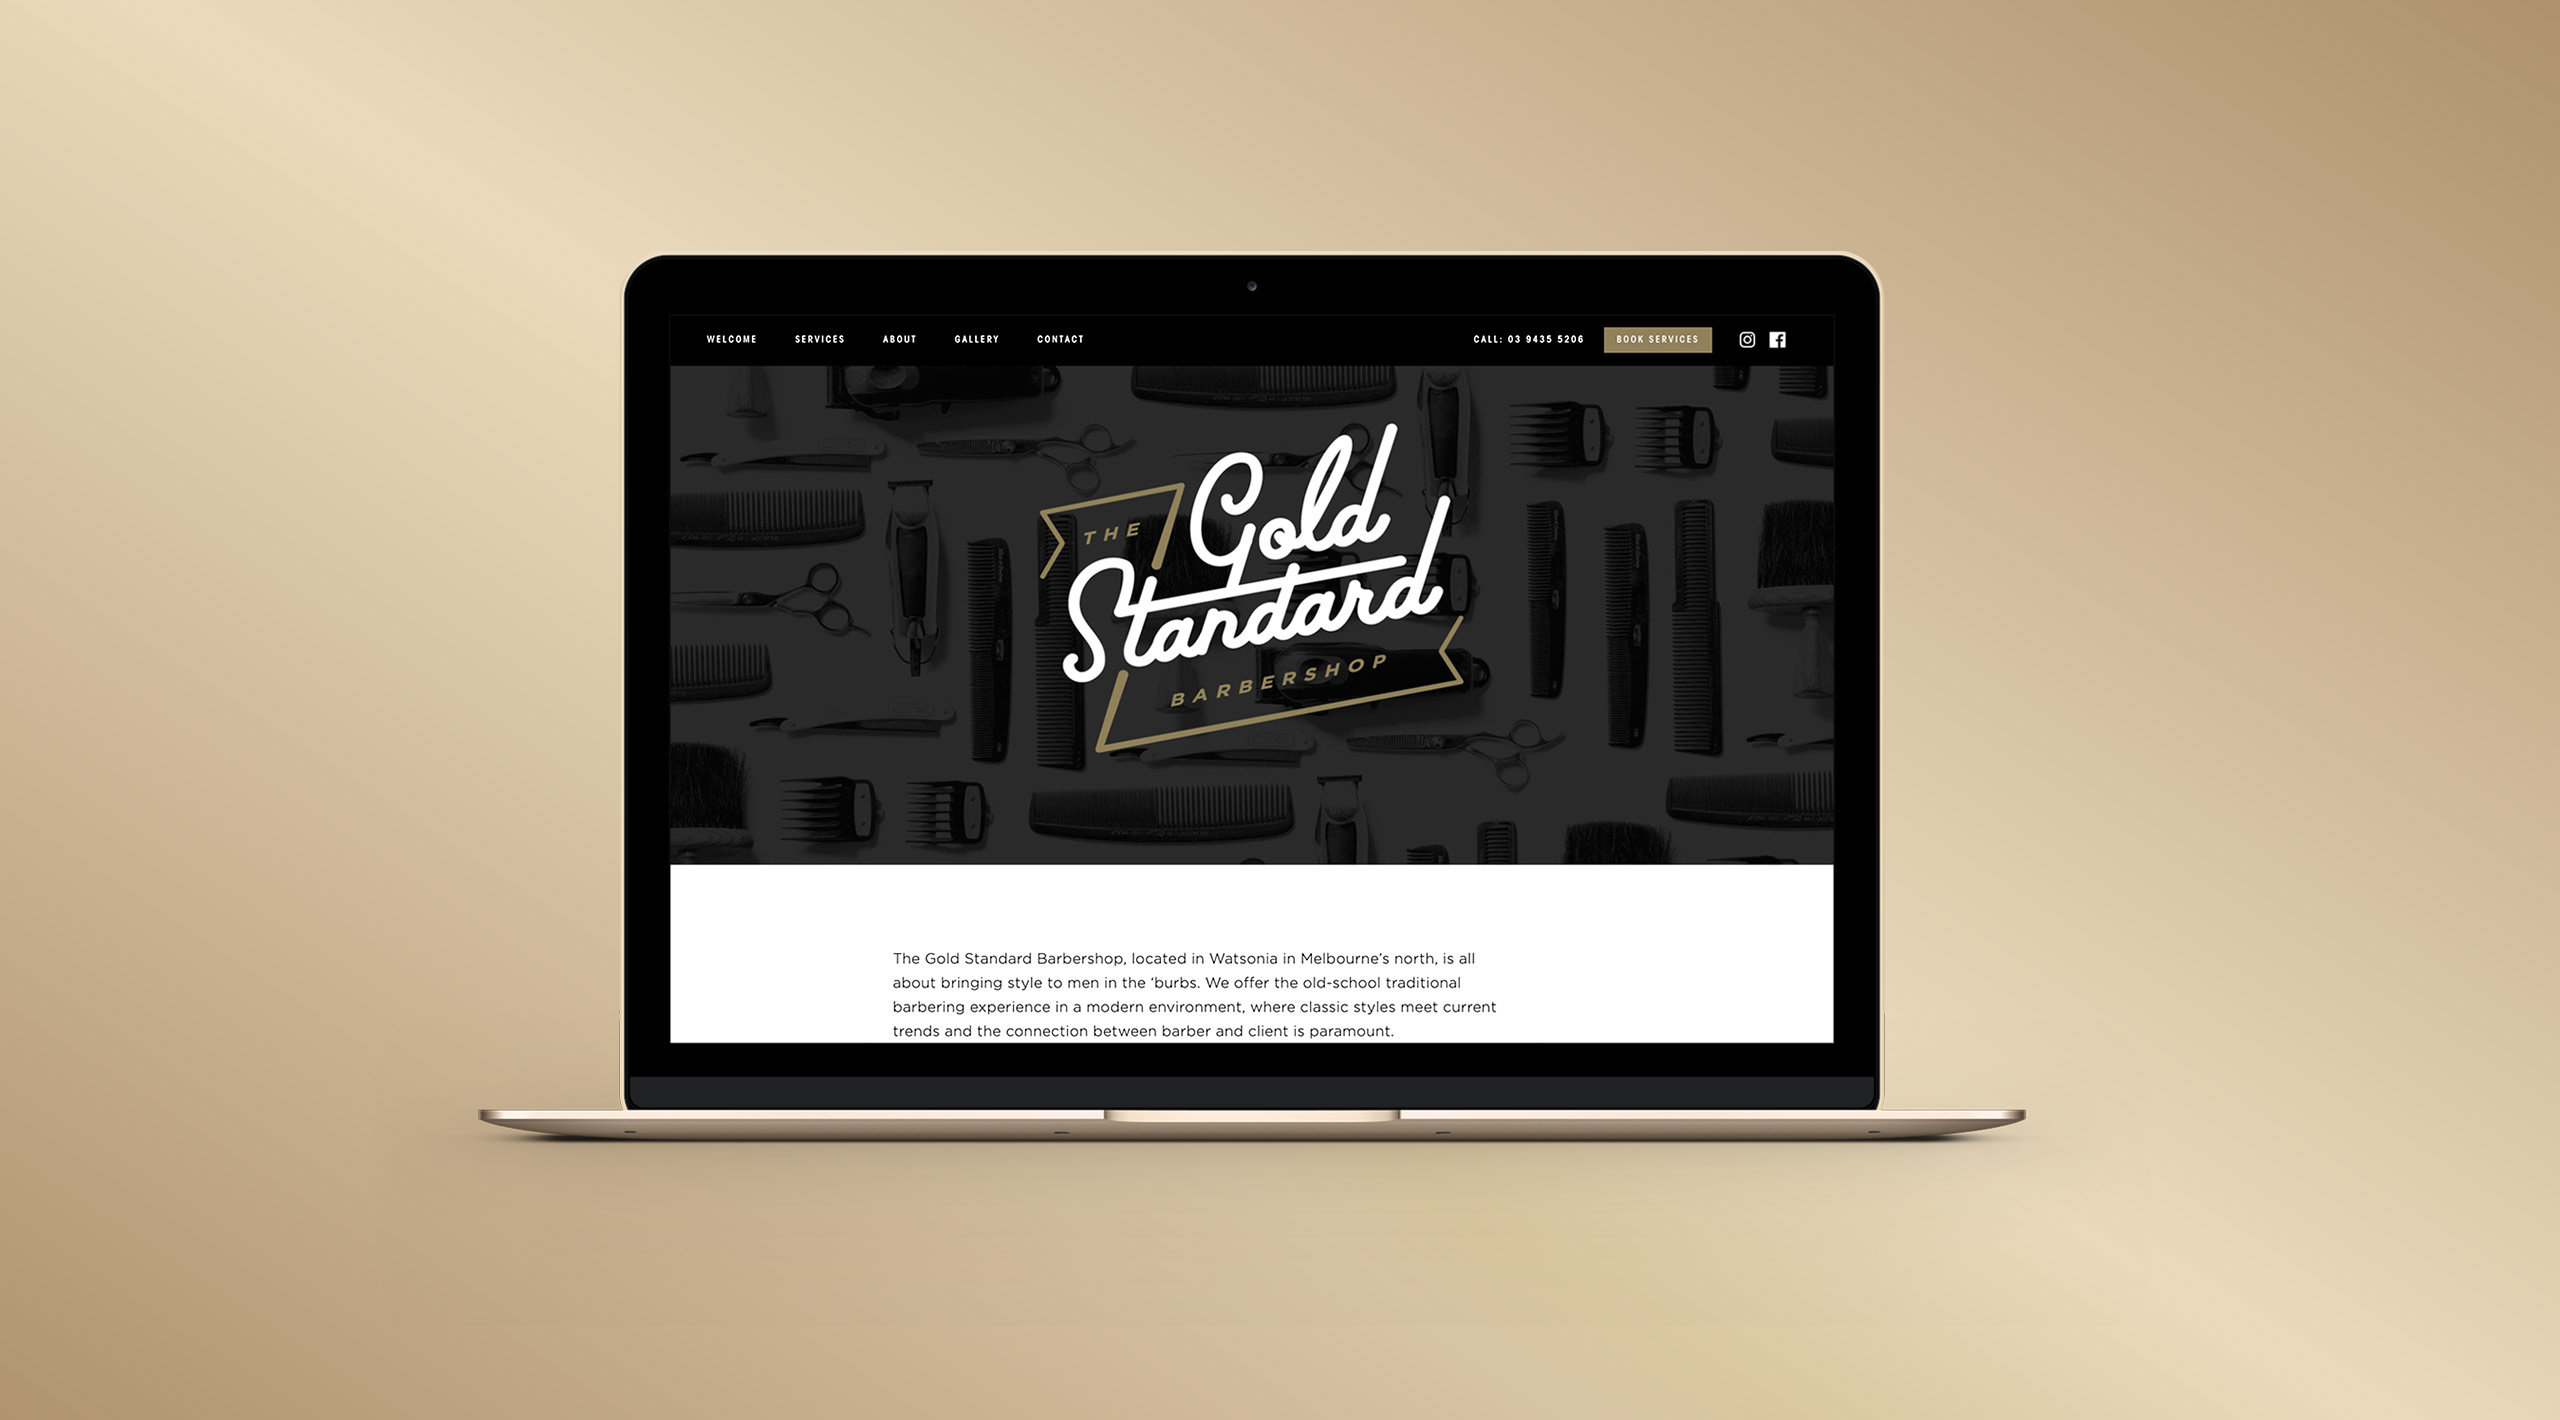 the gold standard barbershop website laptop